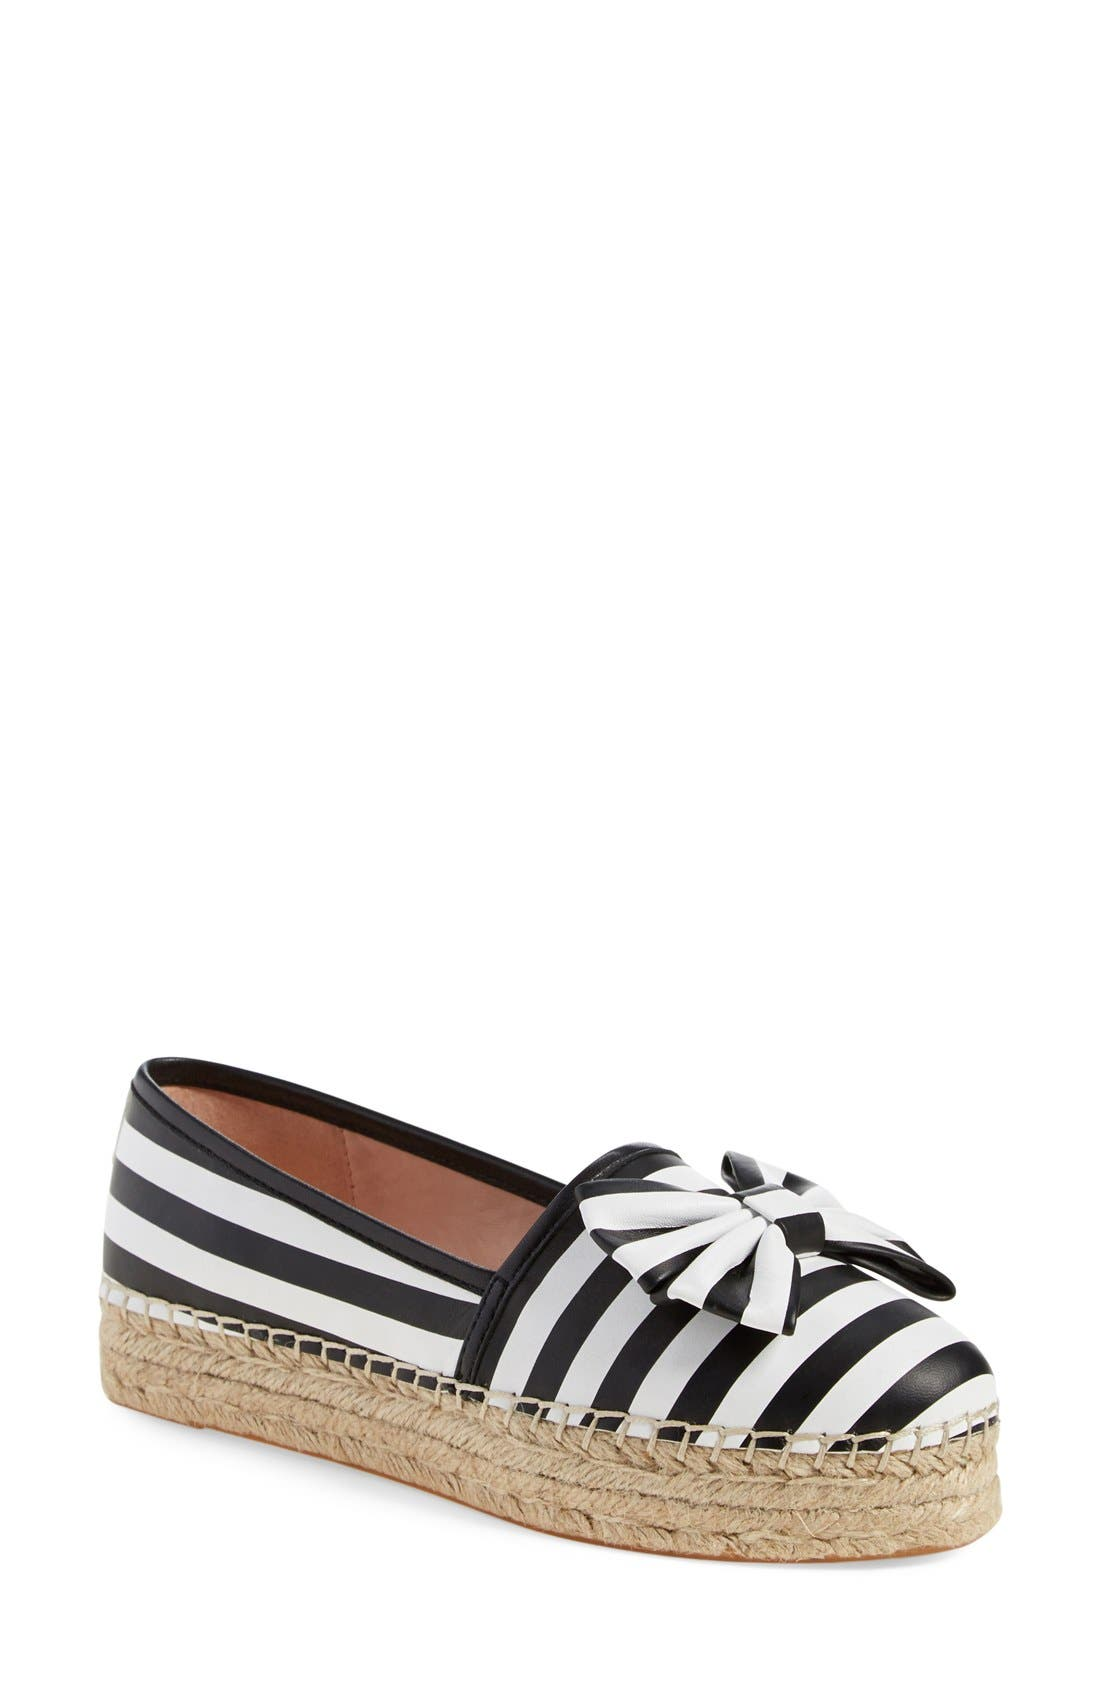 'linds' bow espadrille,                             Main thumbnail 1, color,                             001